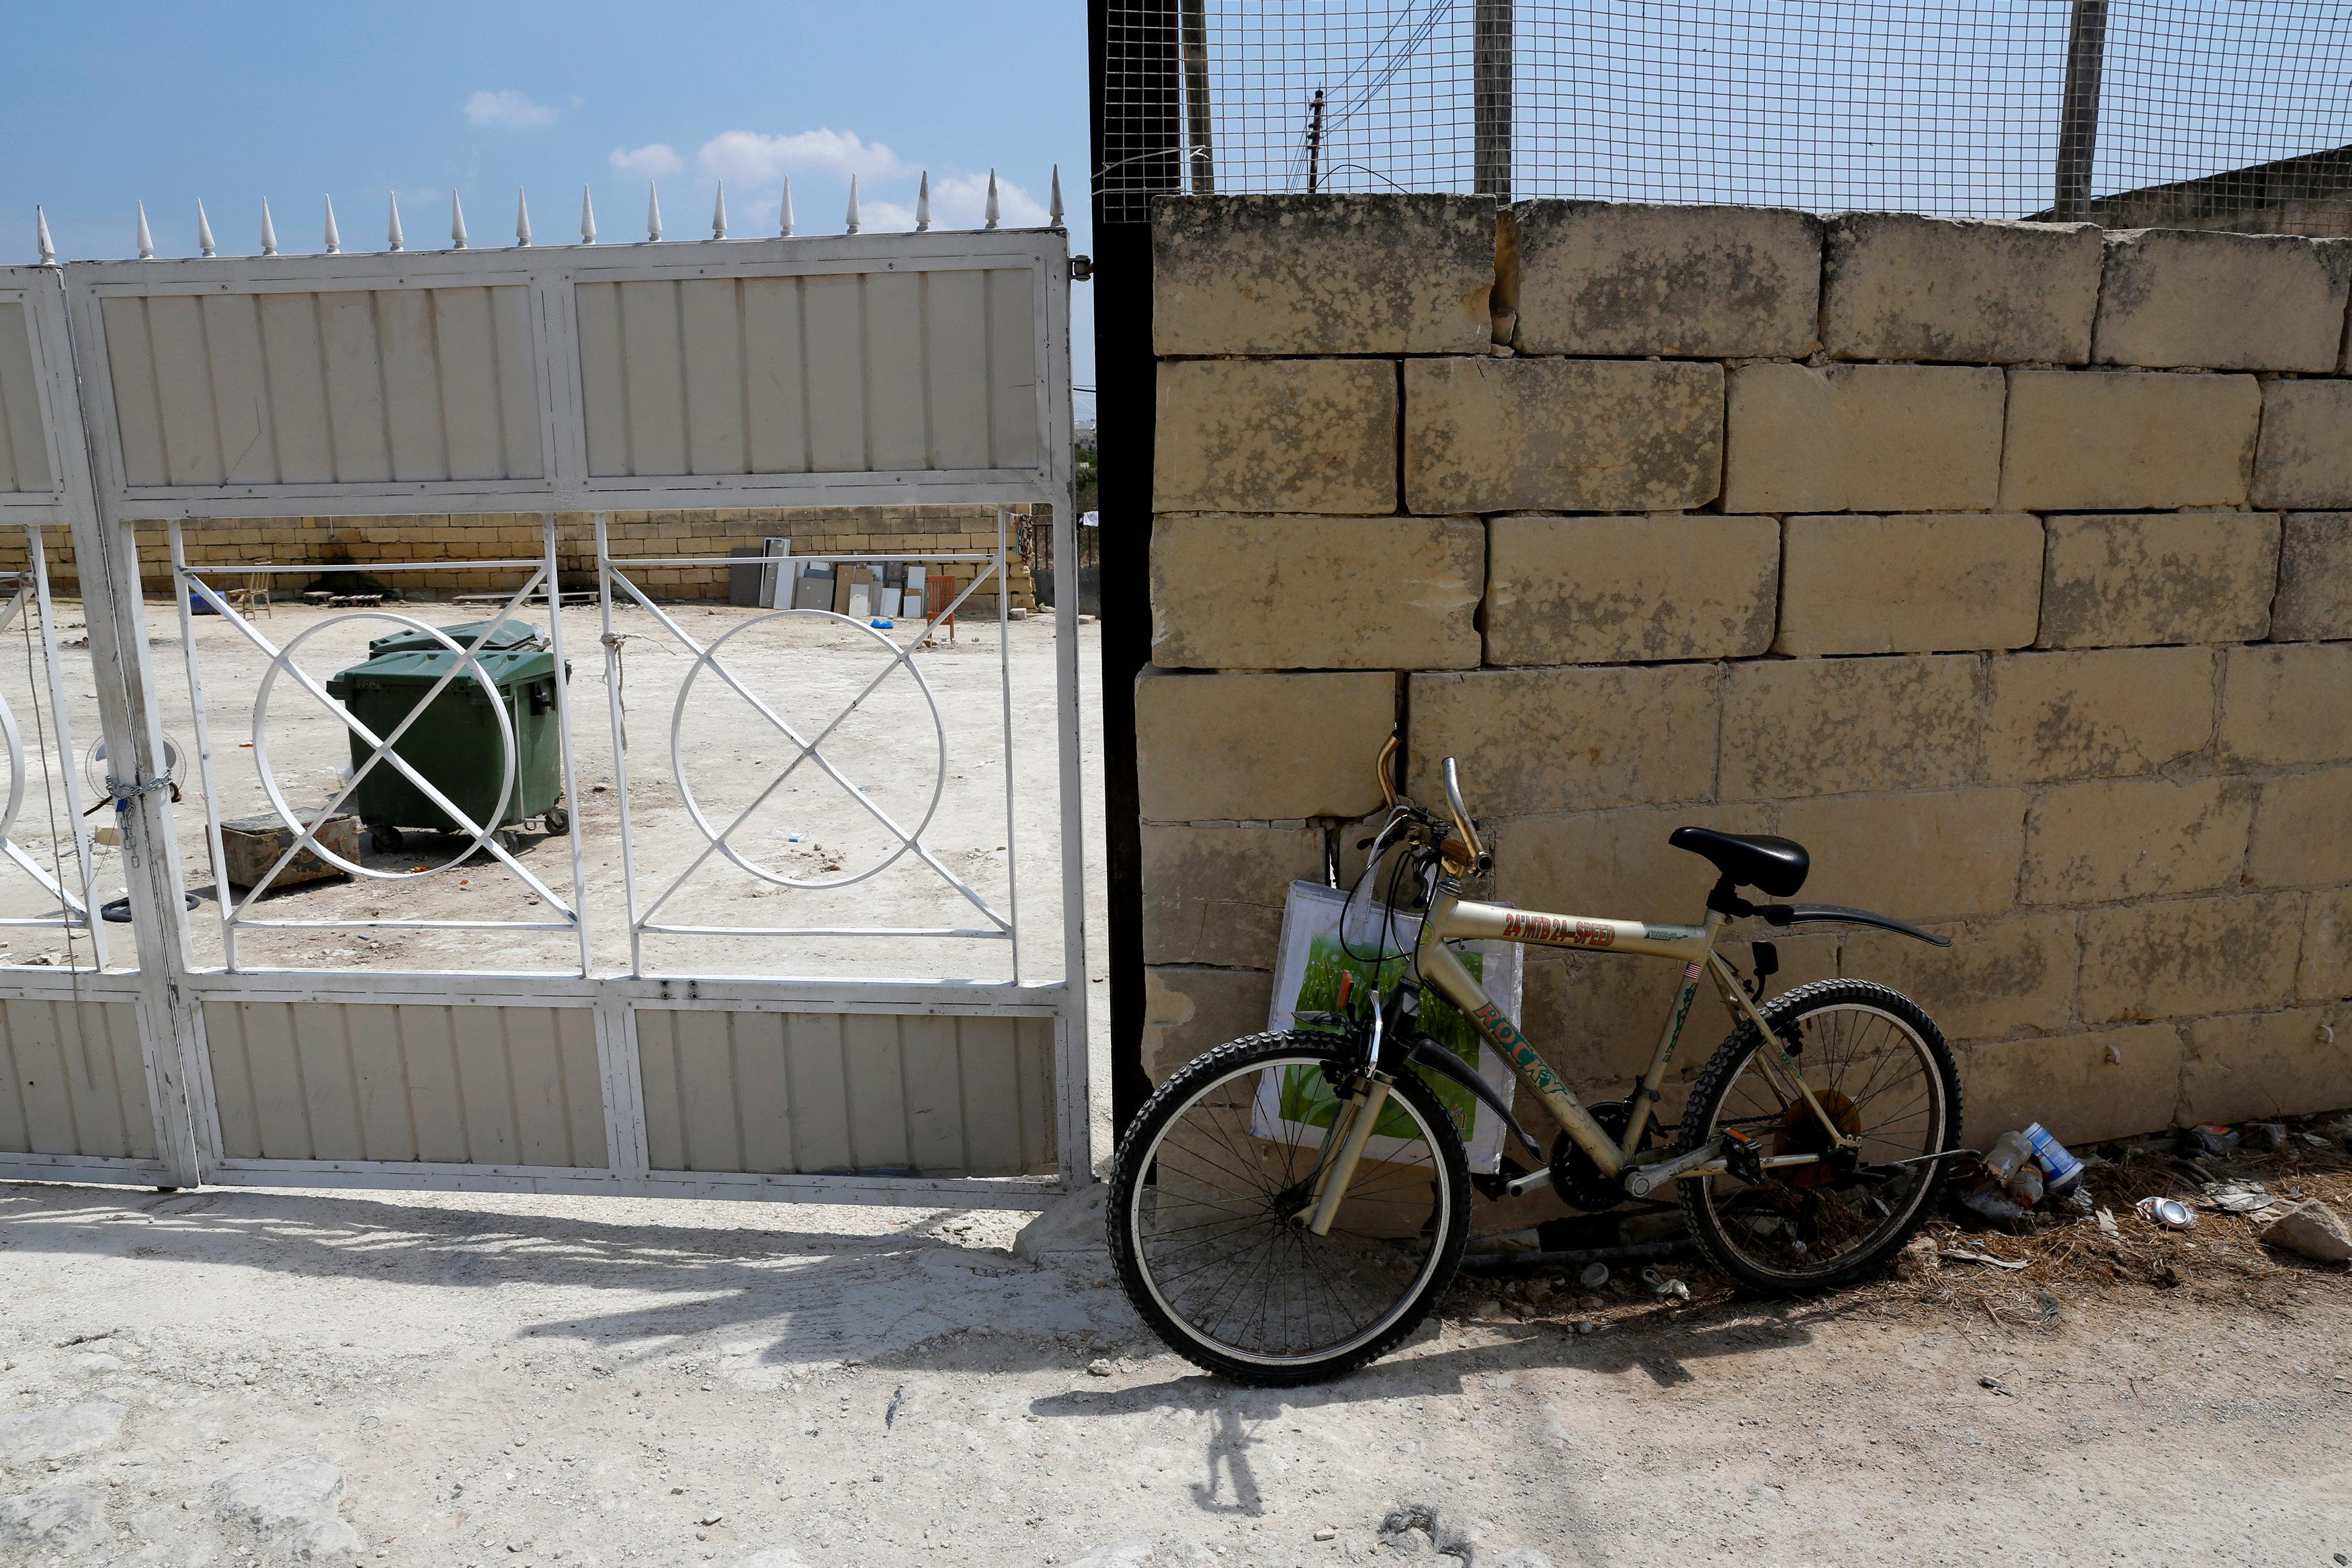 A migrant's bicycle is seen outside a farm where police evicted some 110 African migrants who had been living in stalls formerly used by cows, in Qormi, Malta August 13, 2018.  Darrin Zammit Lupi